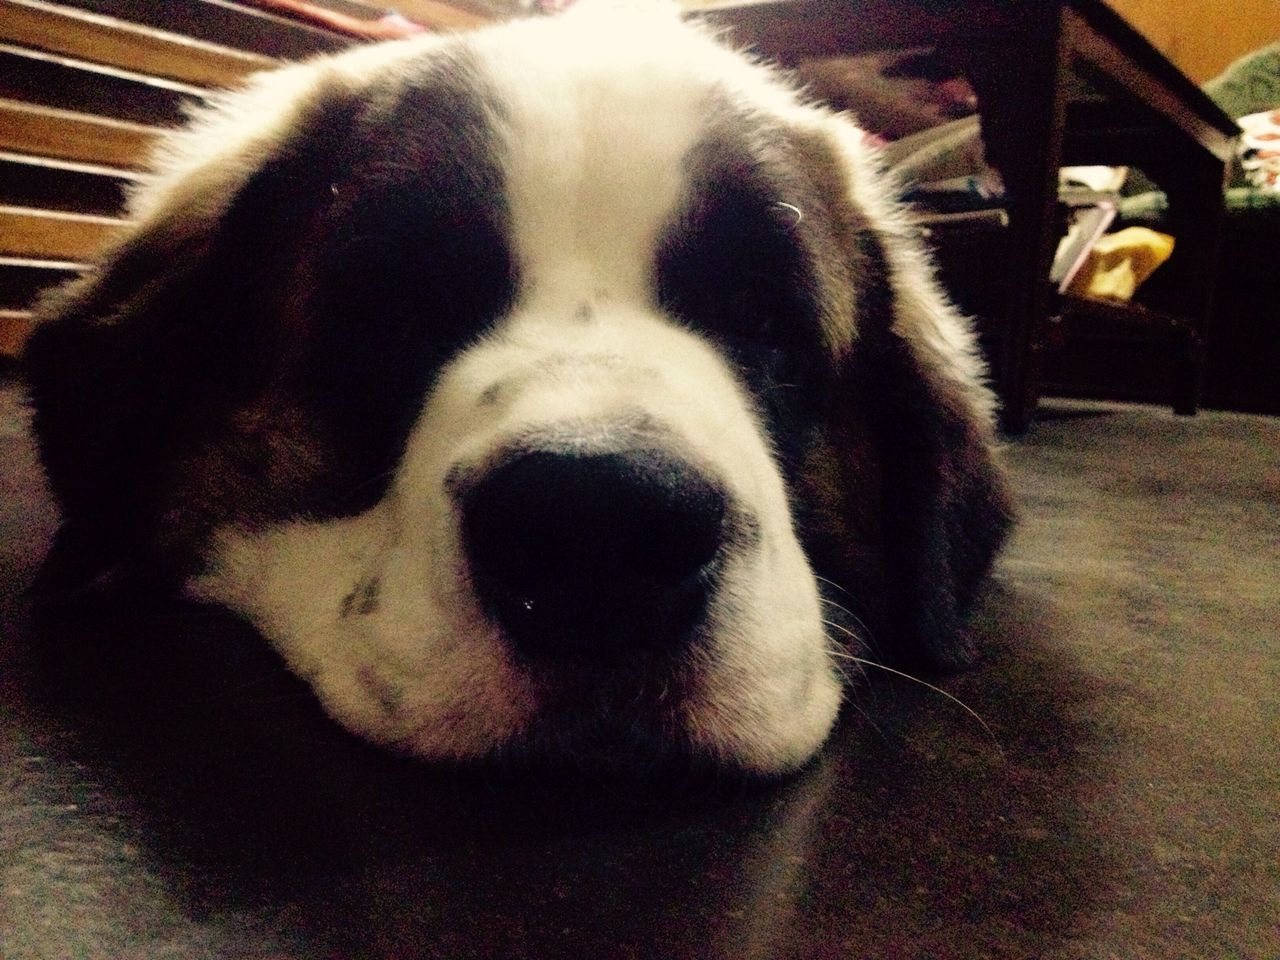 dog, one animal, pets, animal themes, domestic animals, mammal, indoors, close-up, no people, day